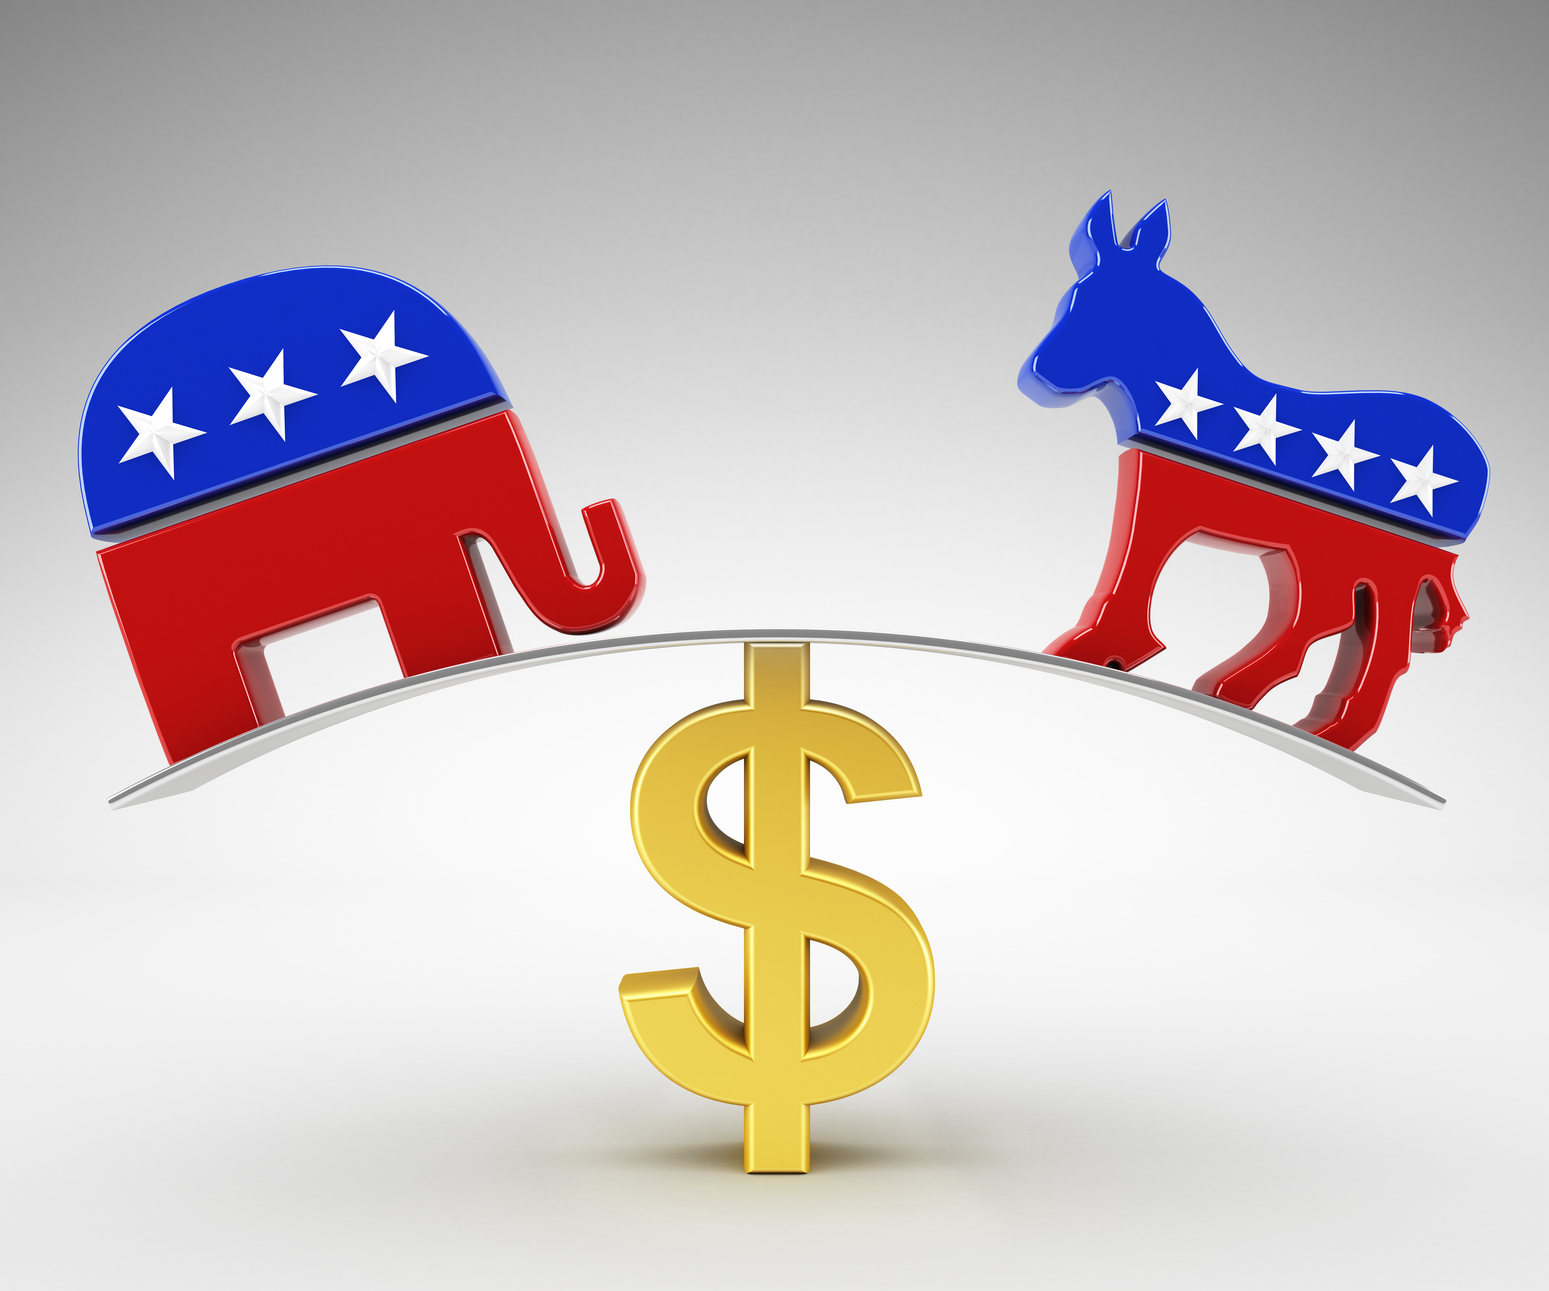 Are Politics Influencing Your Investment Decisions